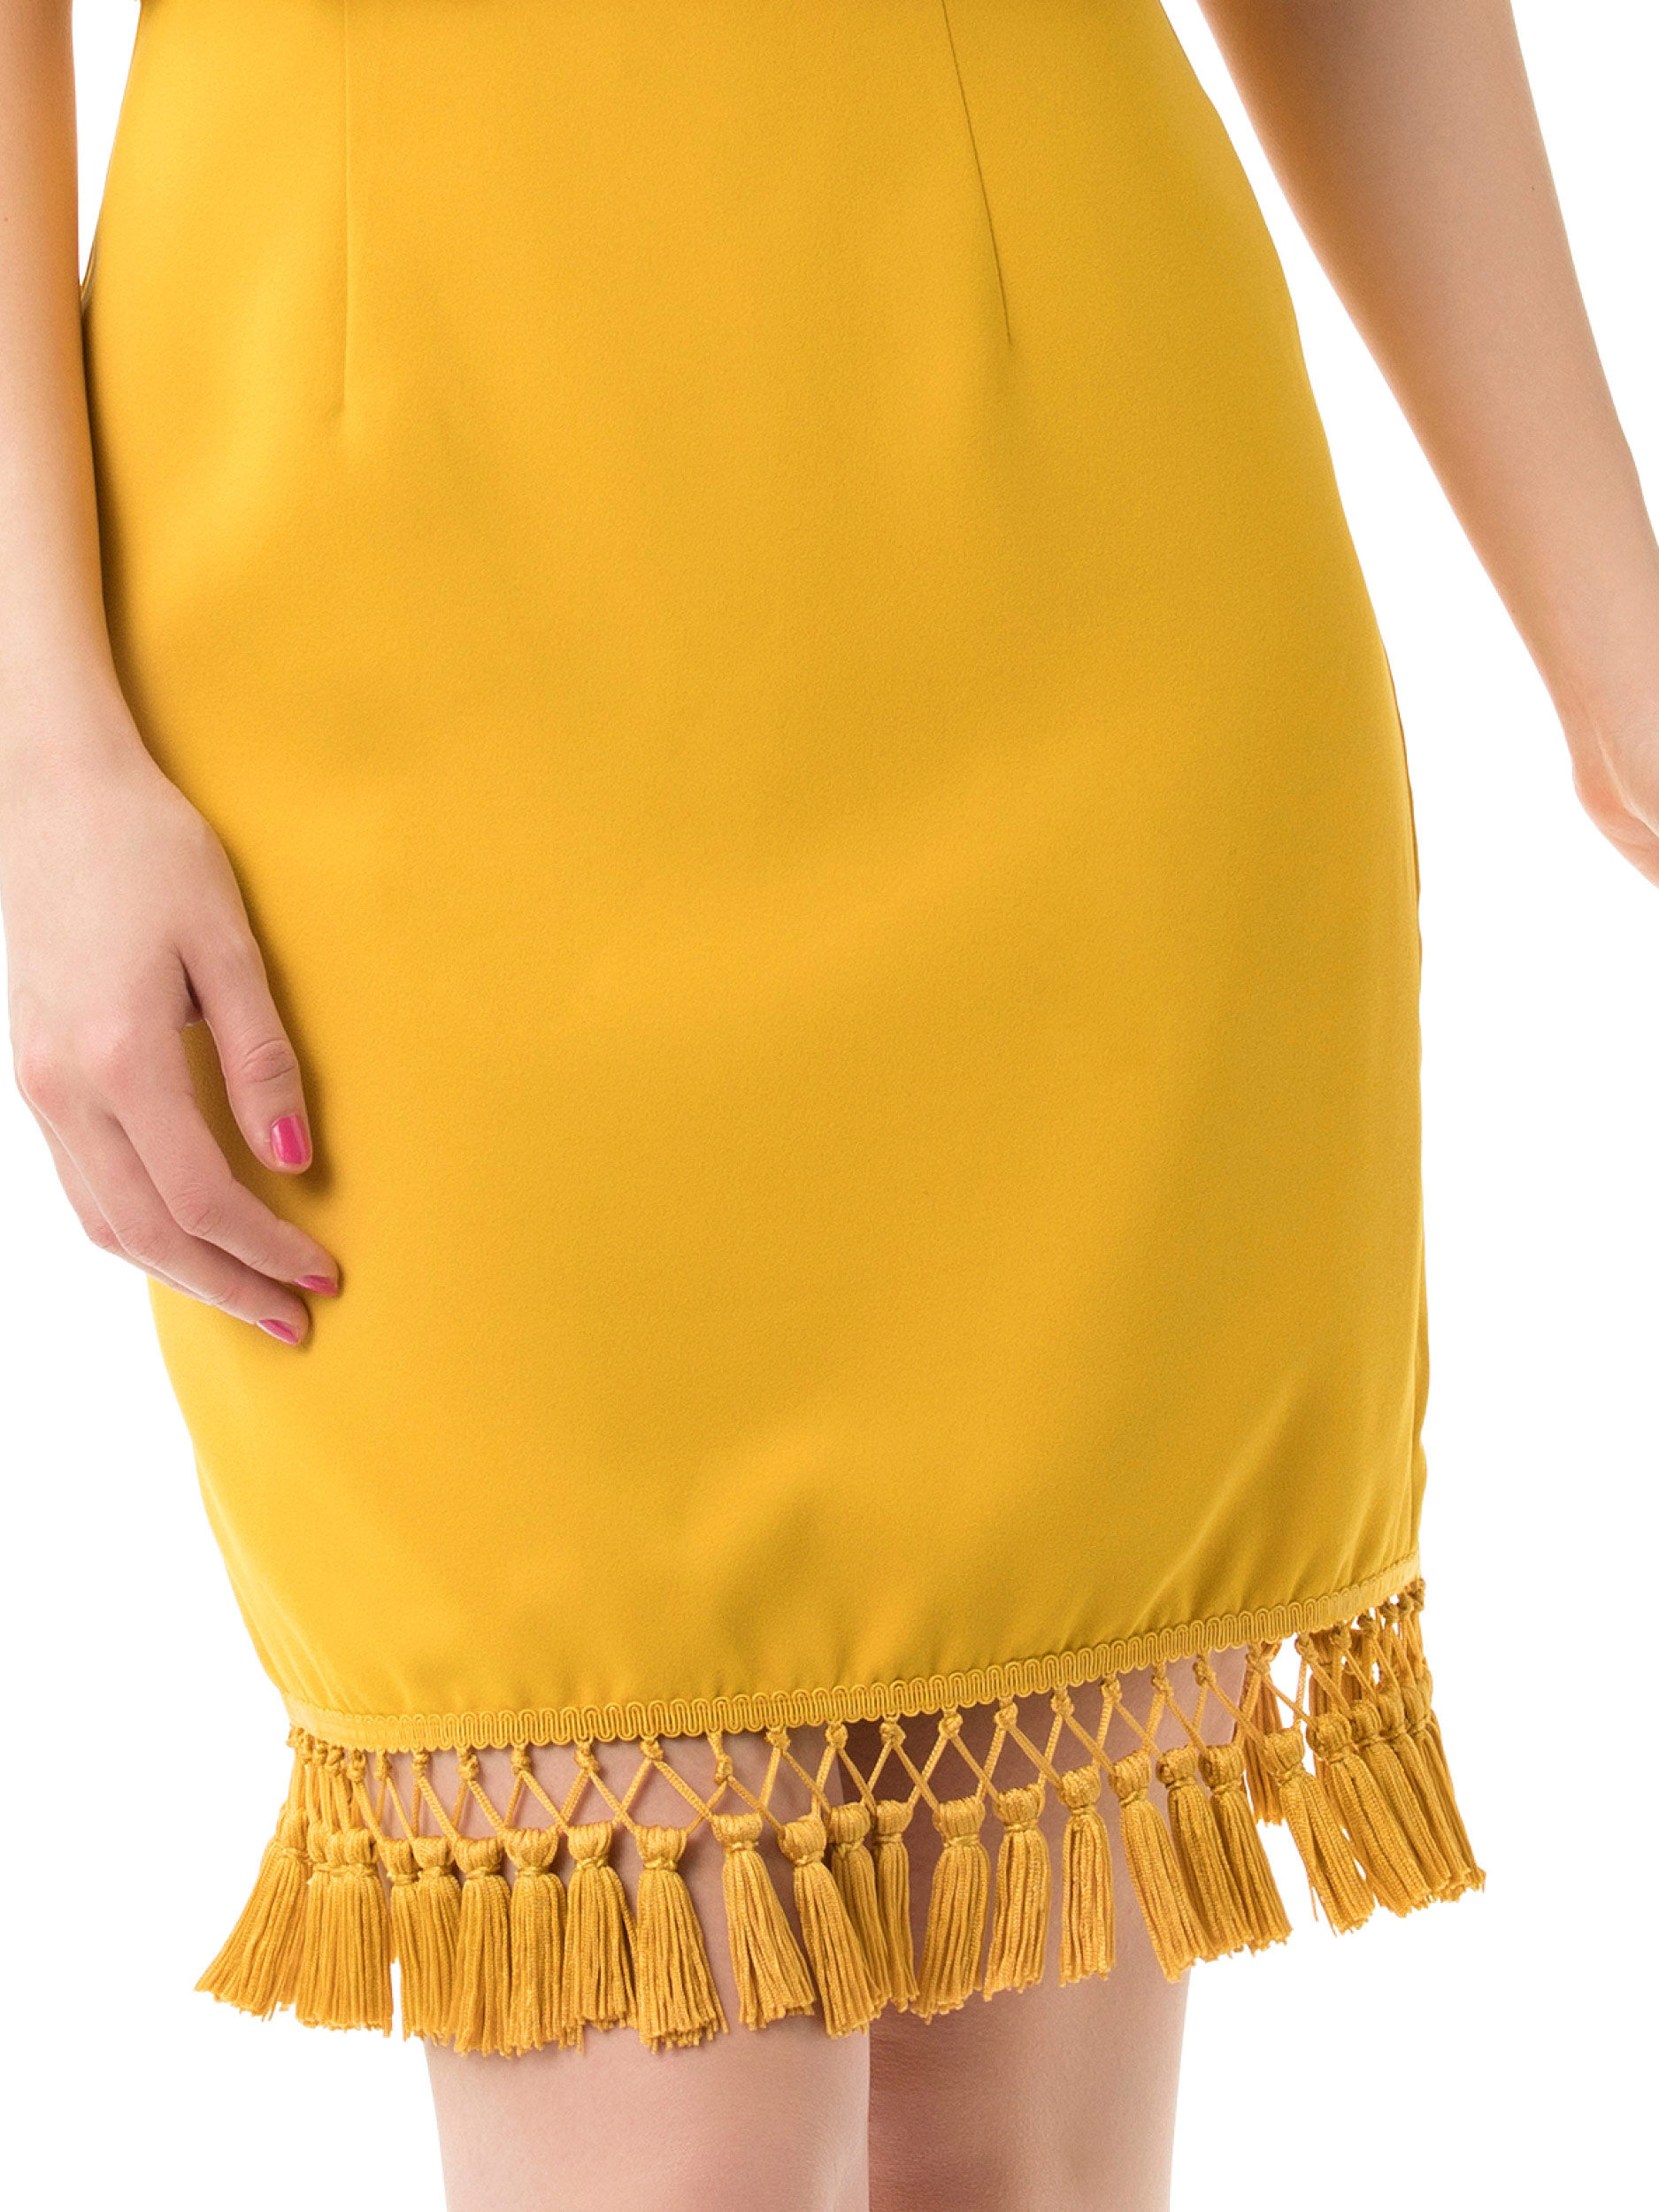 On the Fringe Dress